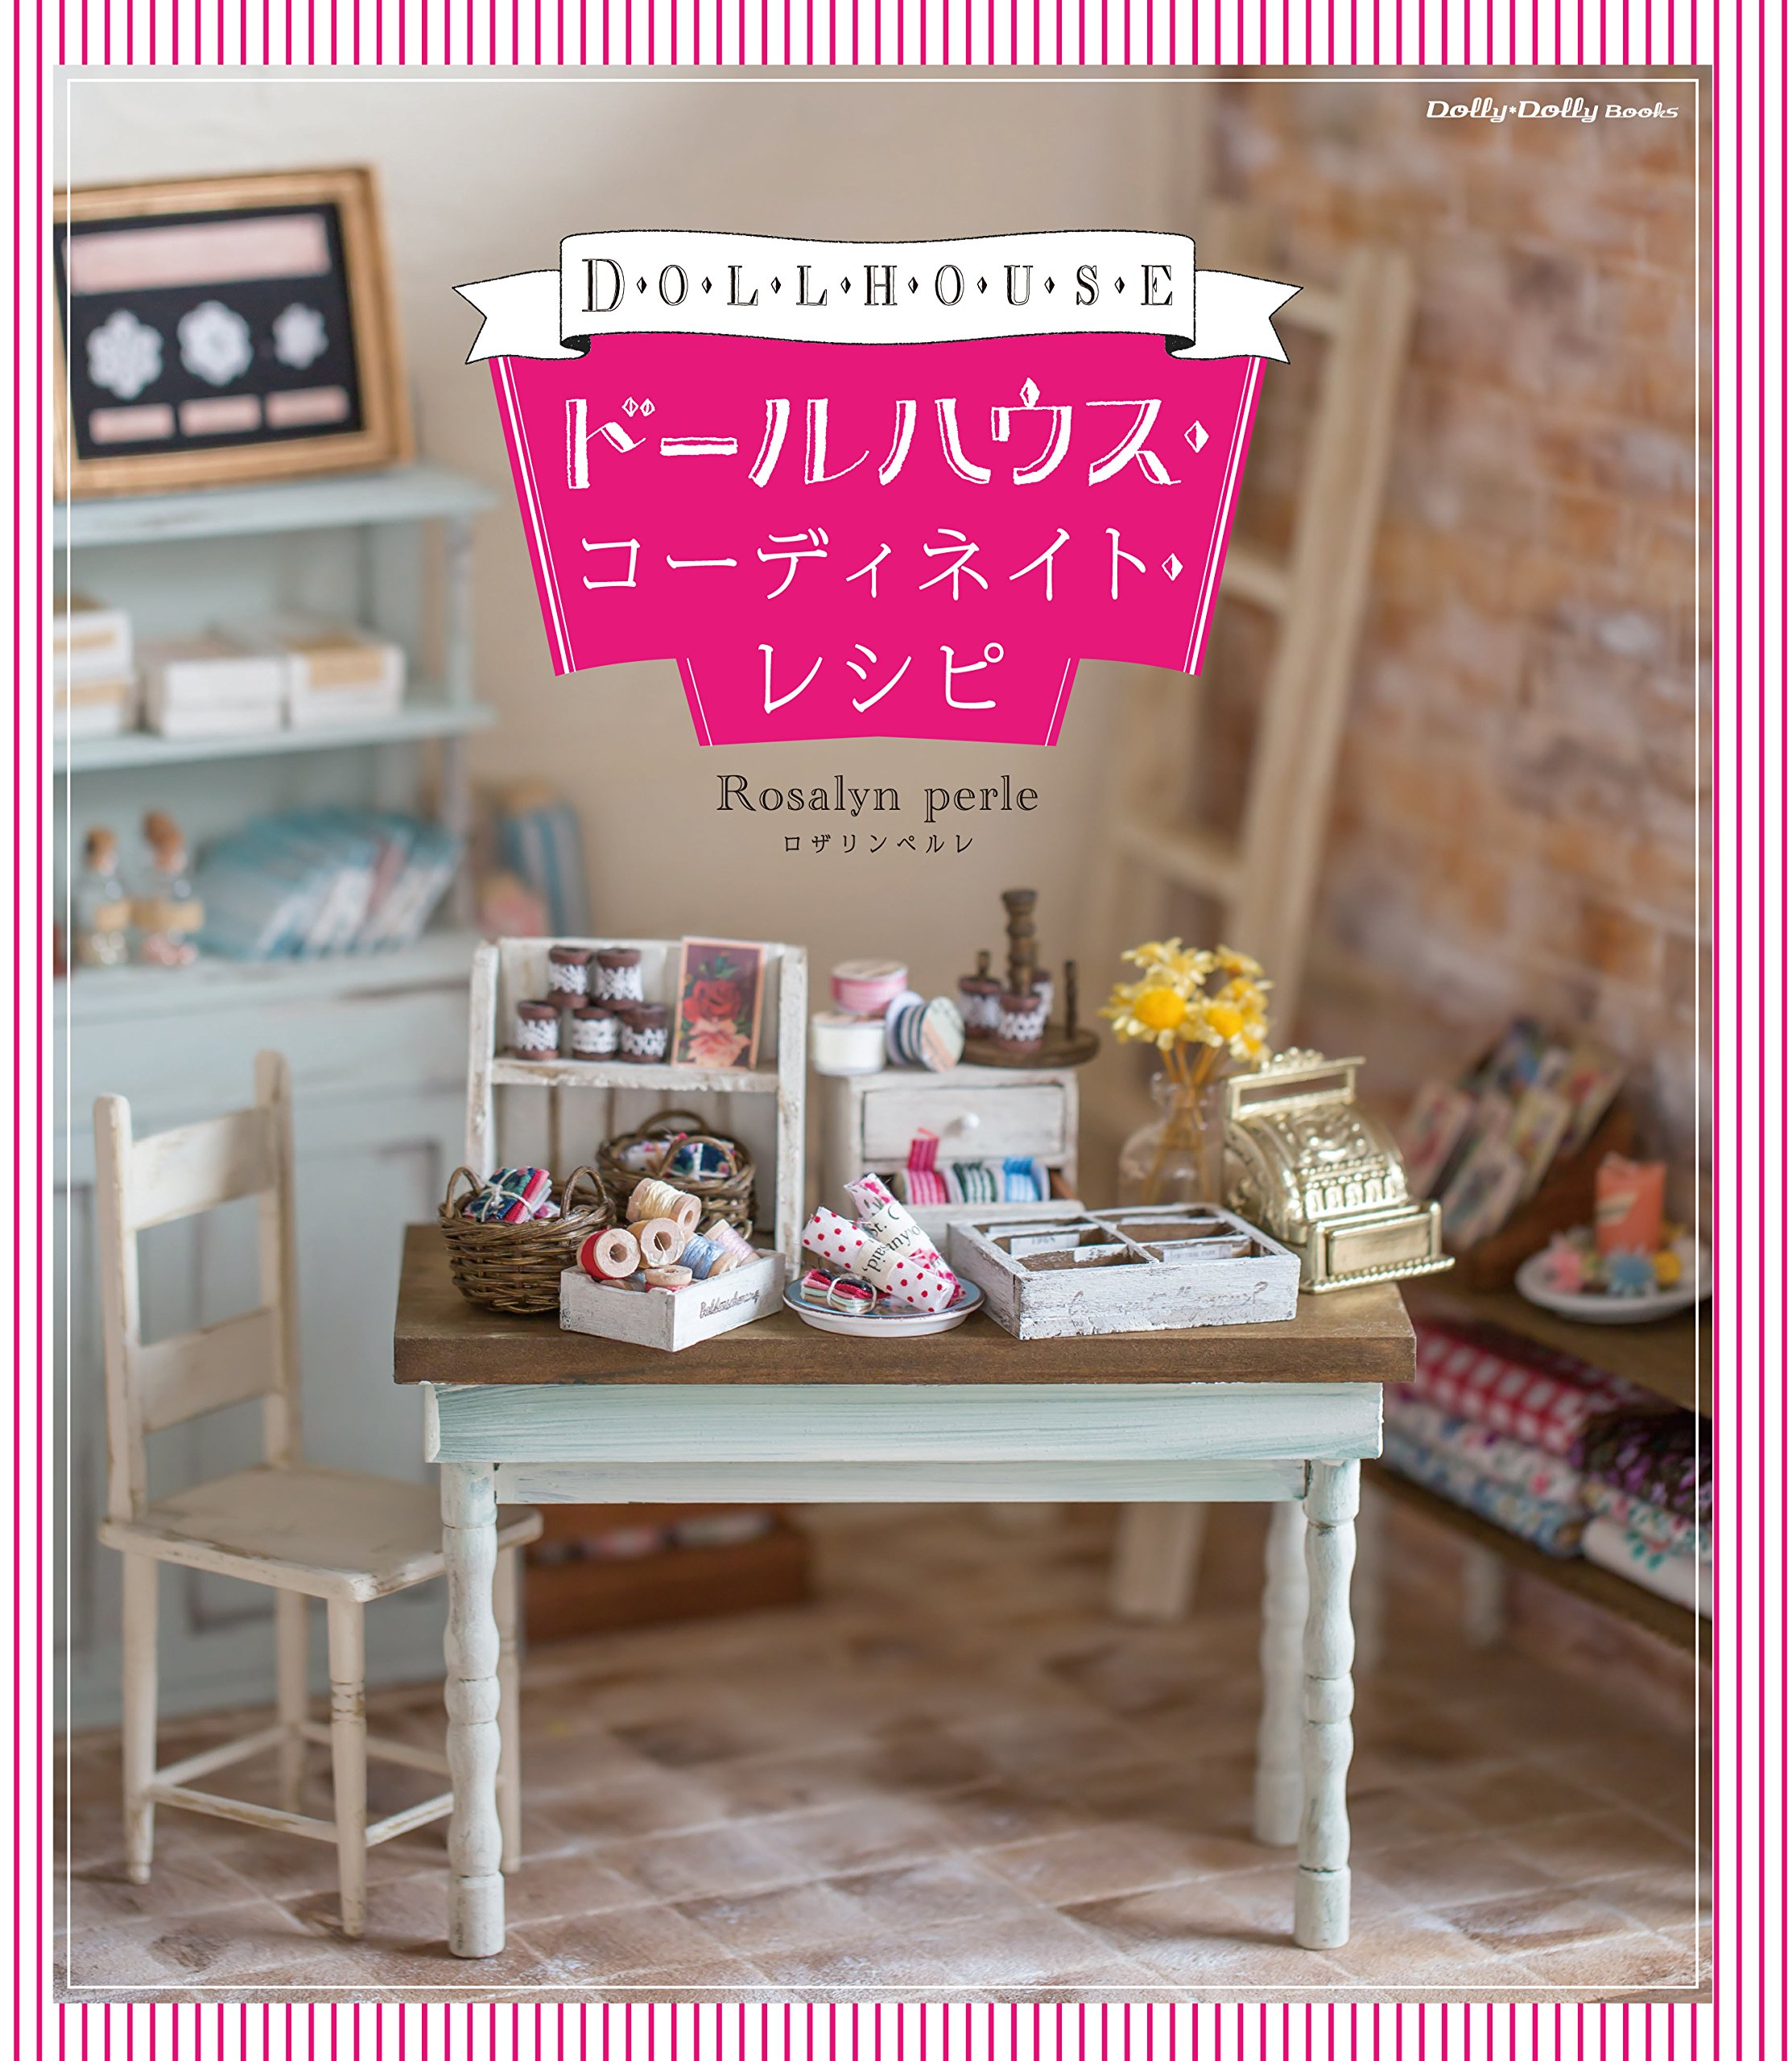 Doll House Coordinate recipes